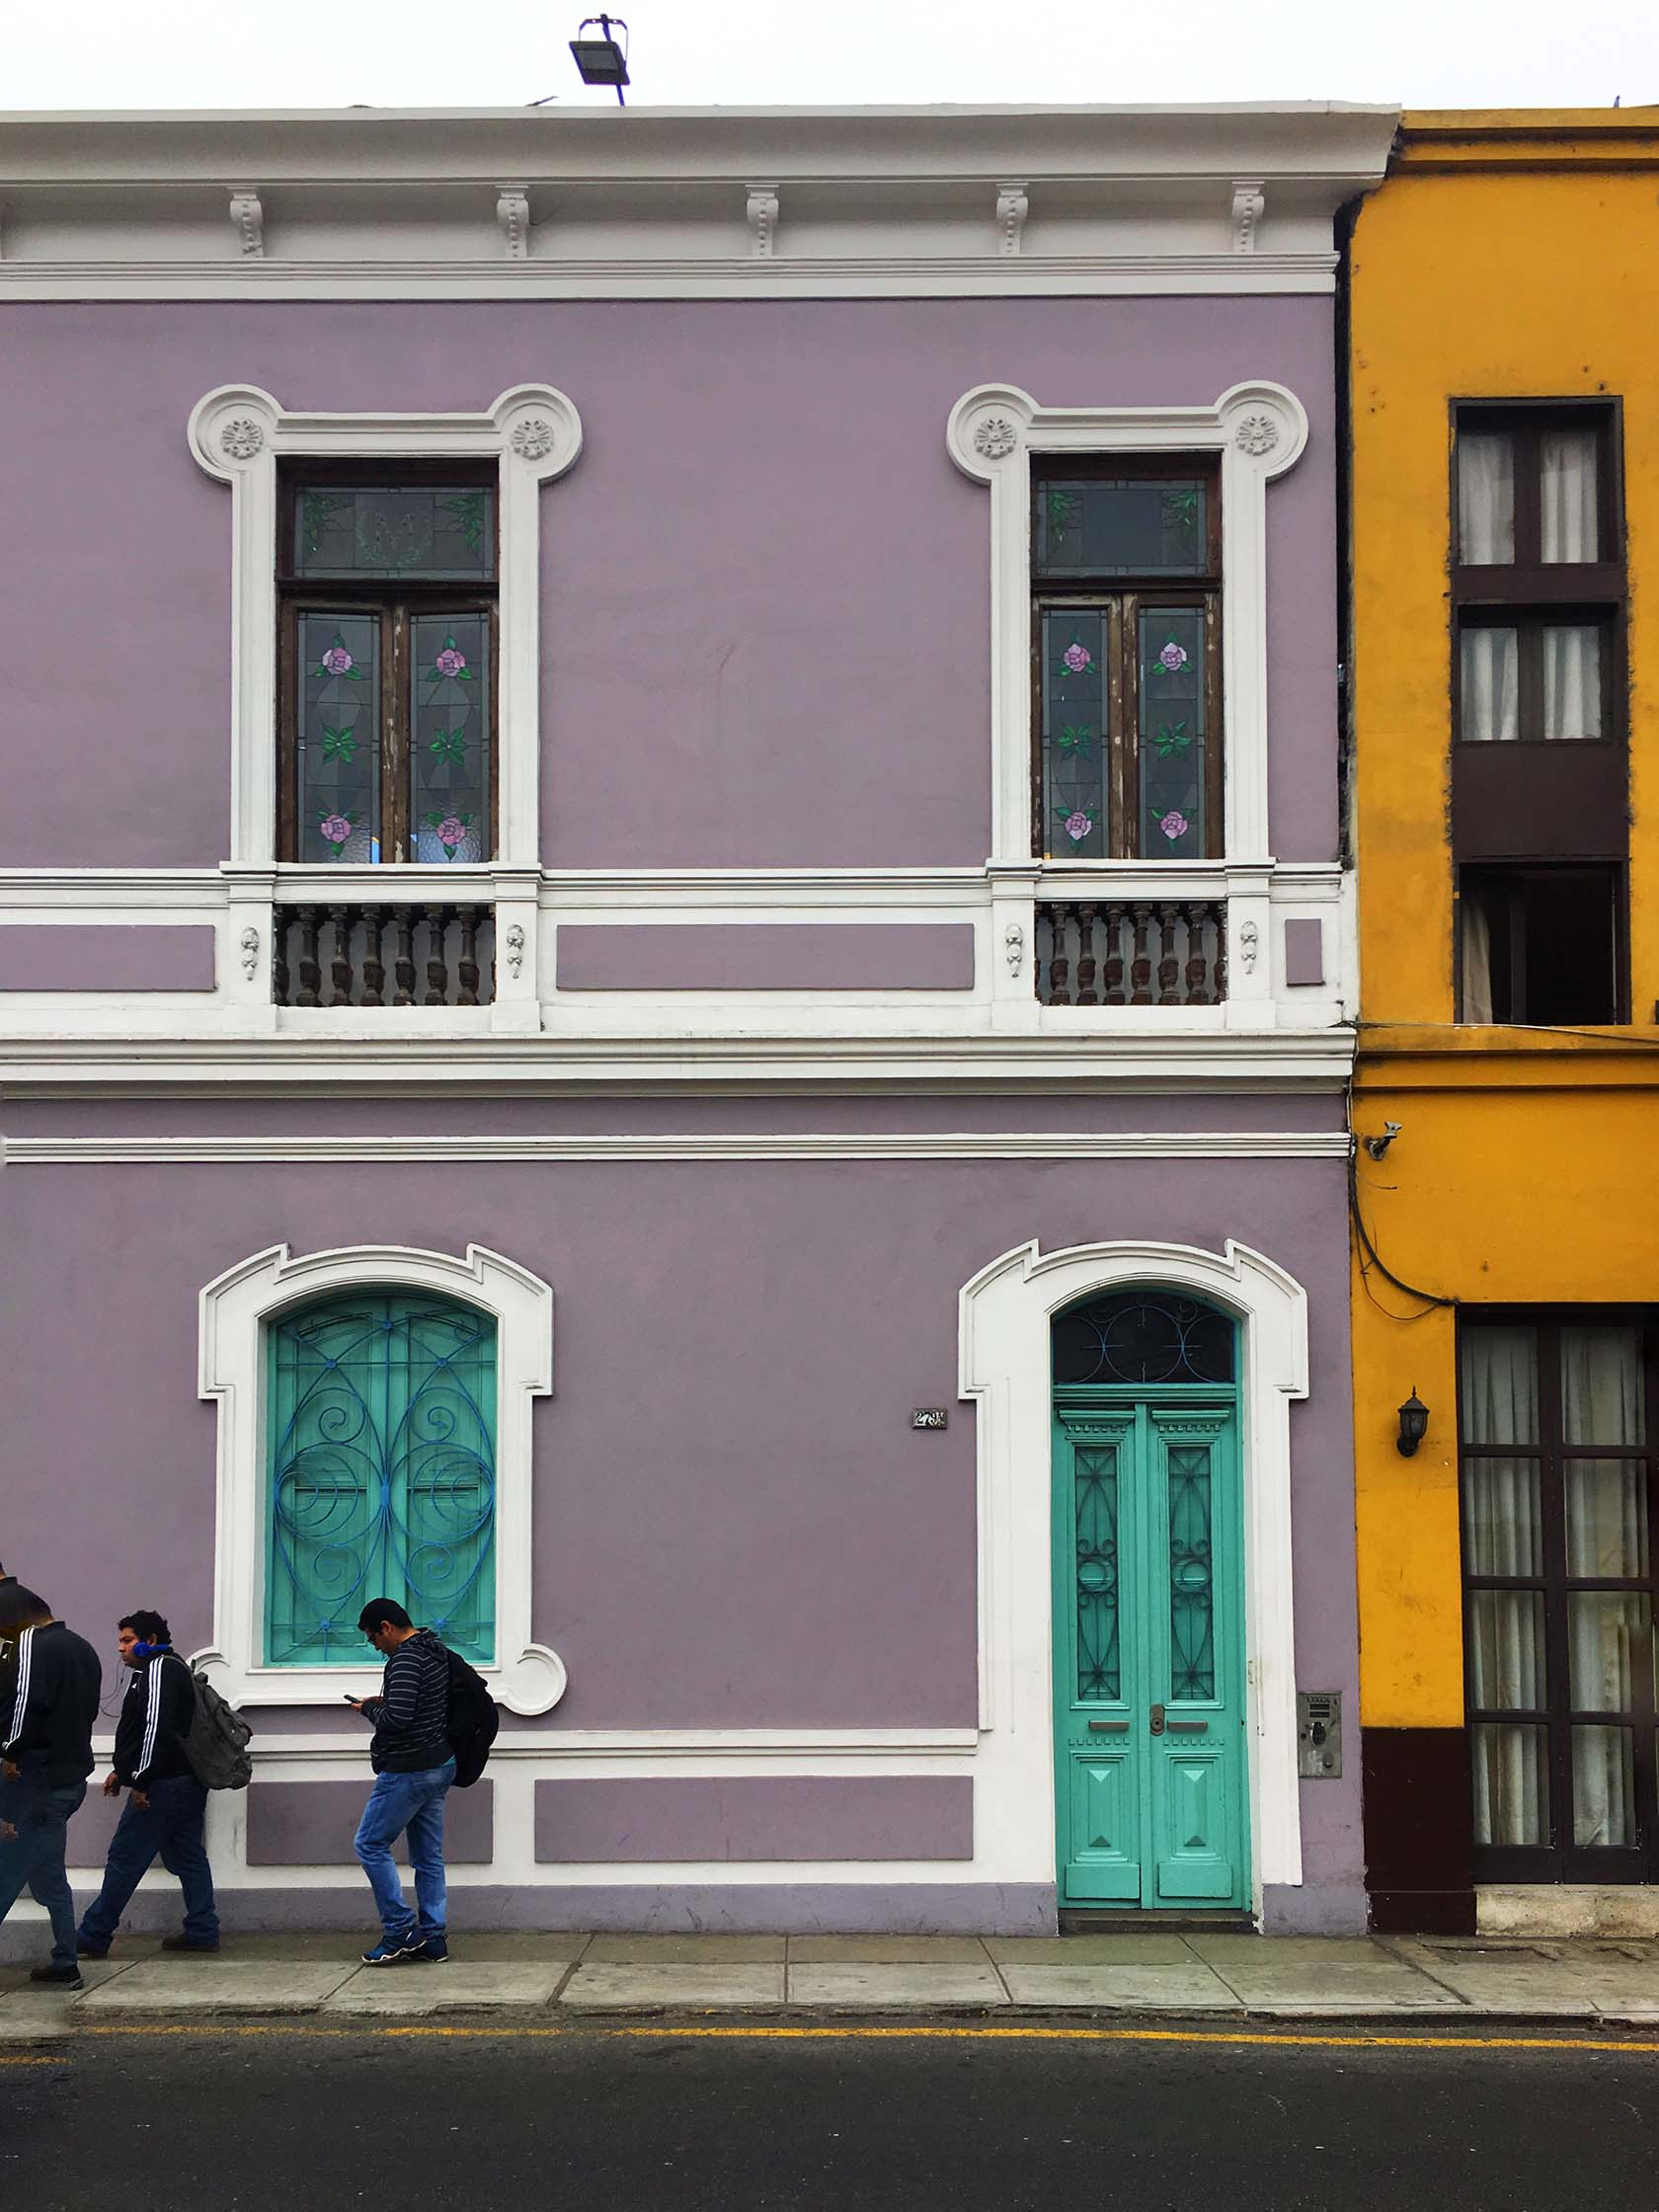 chaotic charming and arty 48 hours in lima